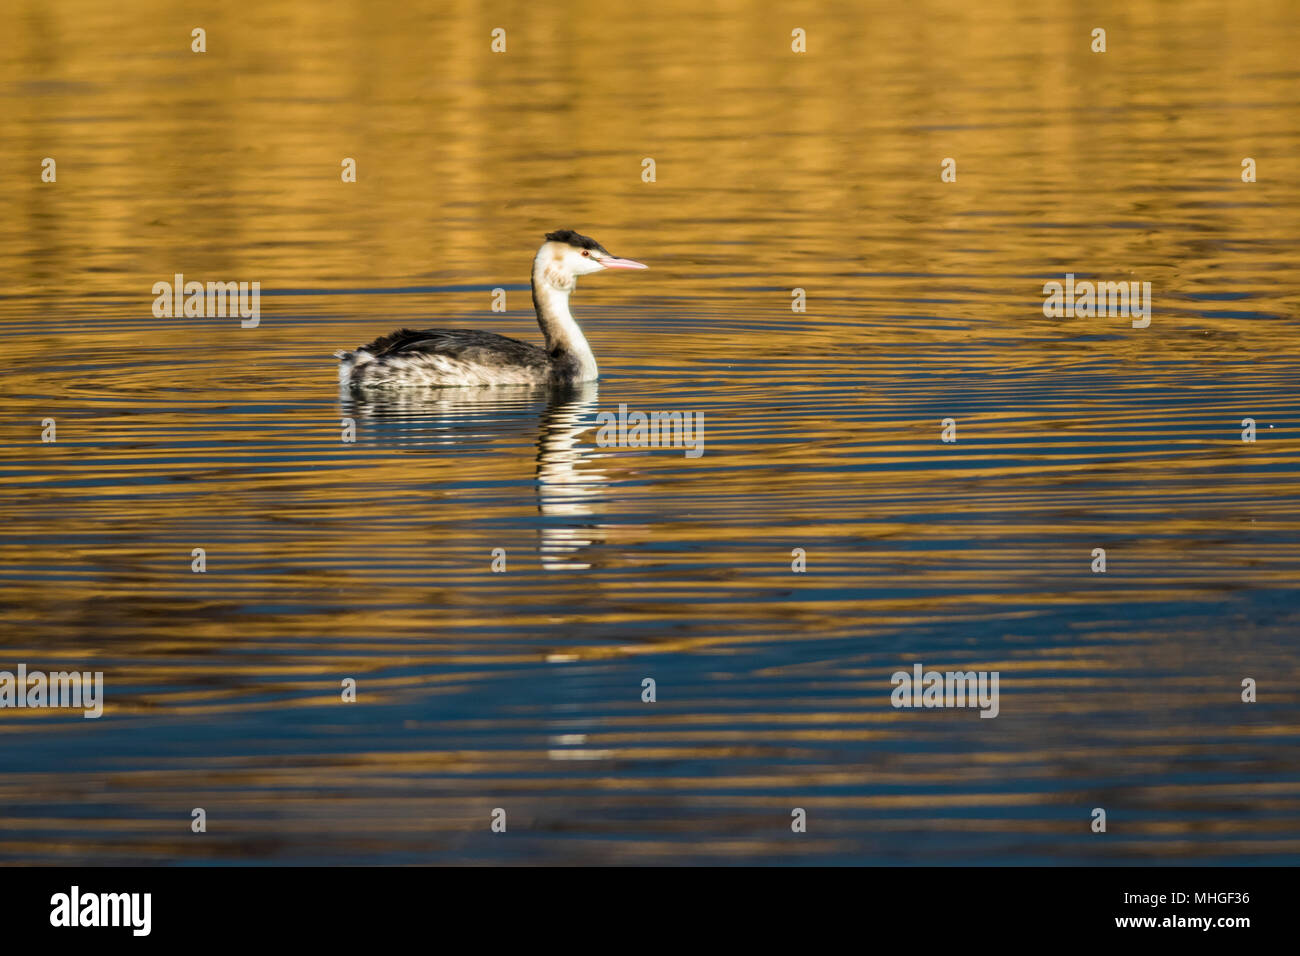 A great crested grebe on a sea near Dillingen - Stock Image